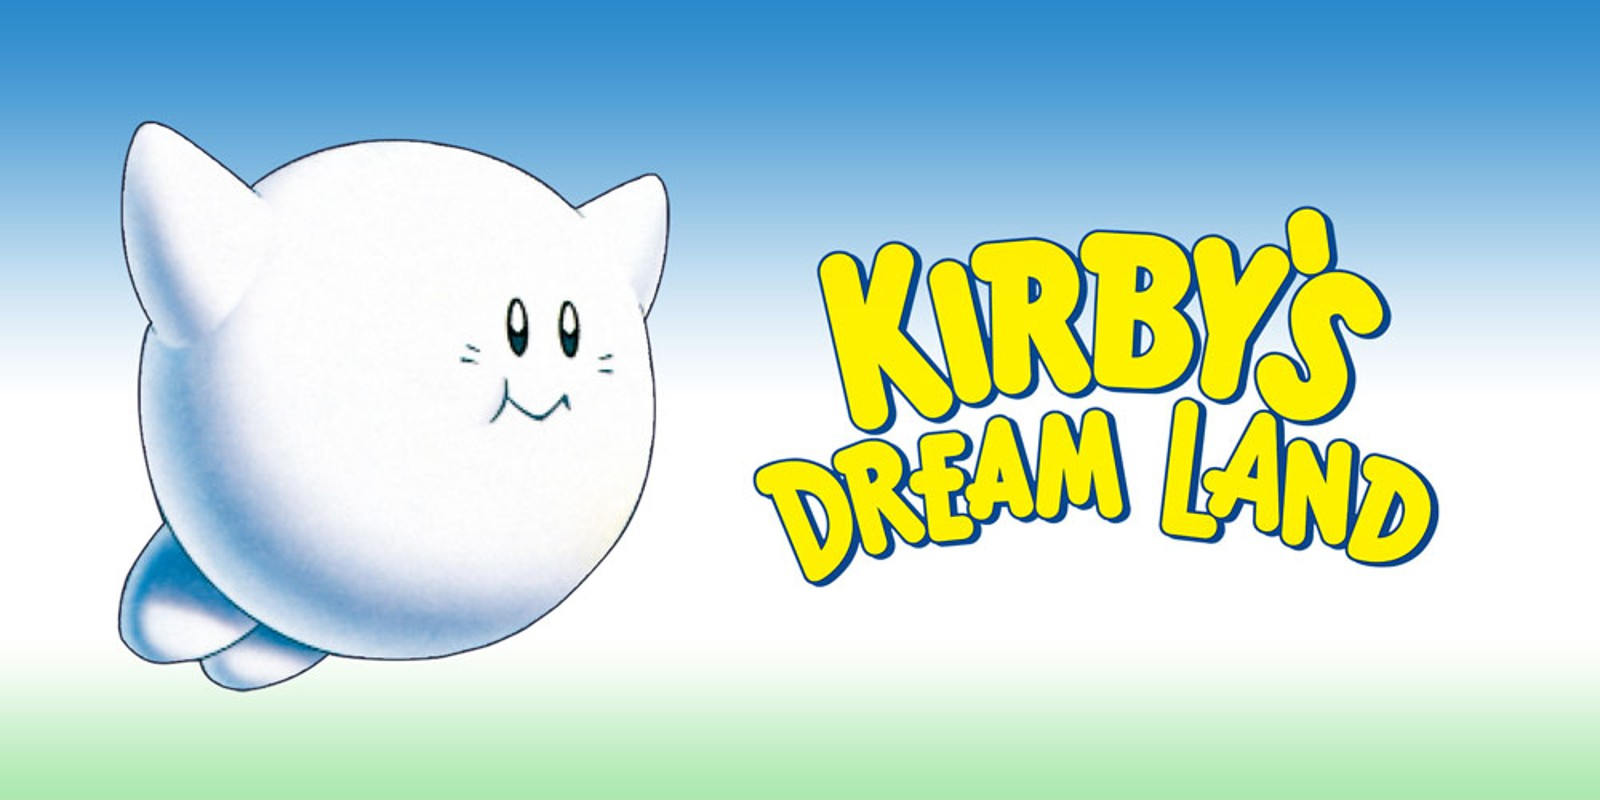 Image result for kirby's dreamland banner